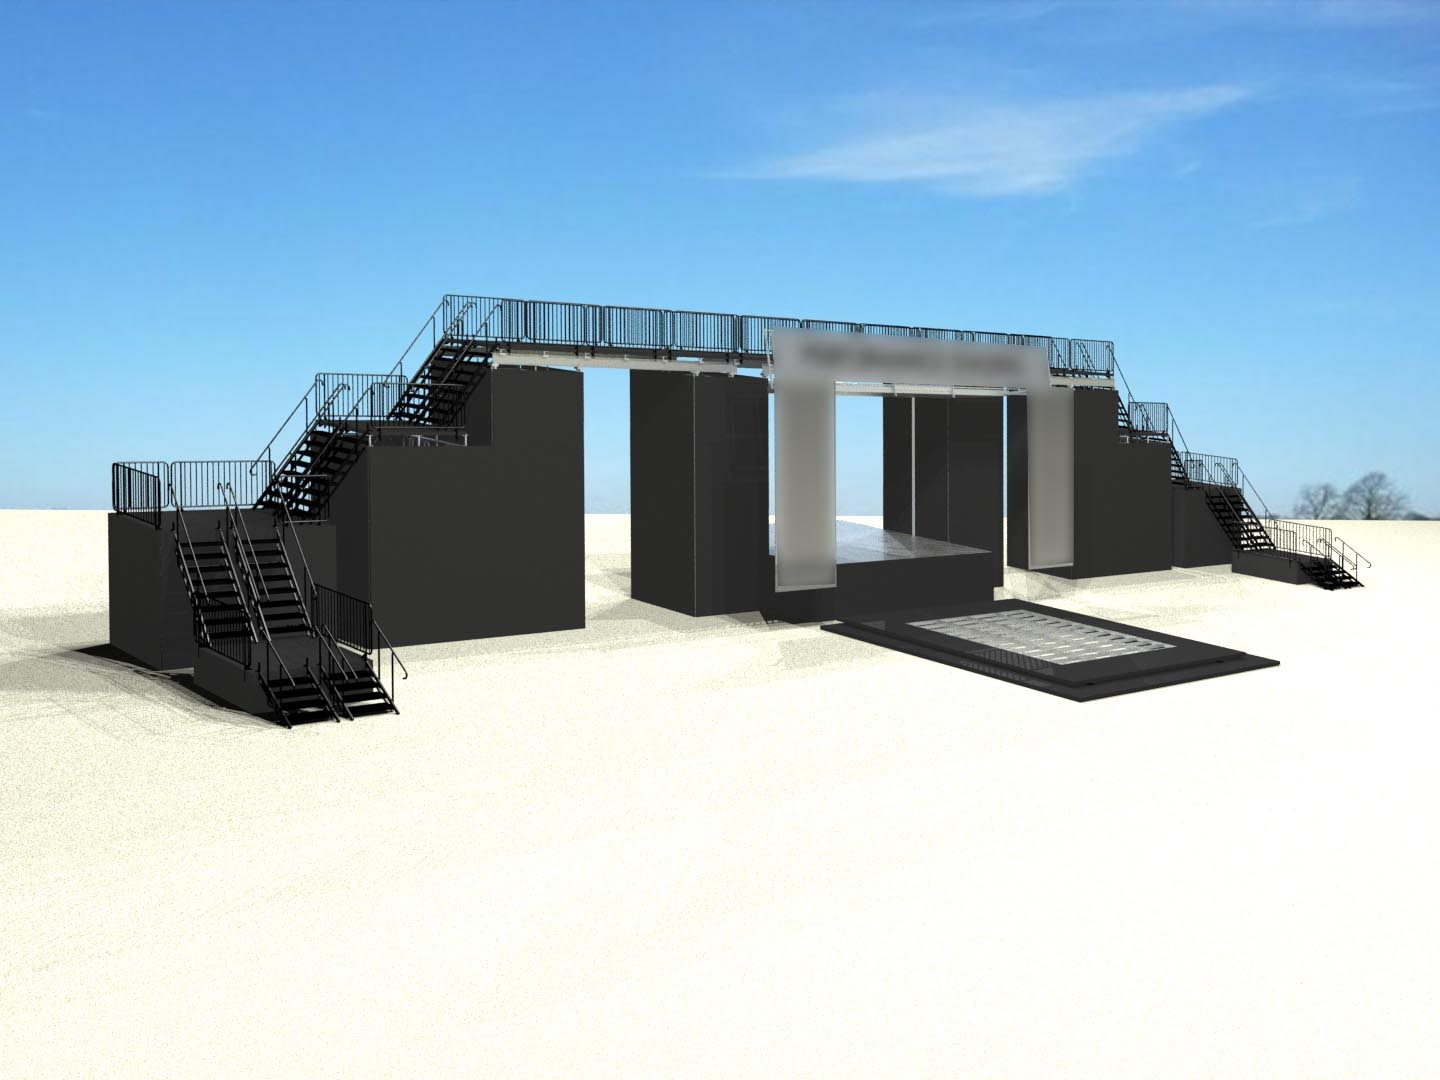 Mobile stage with platforms rising above and around